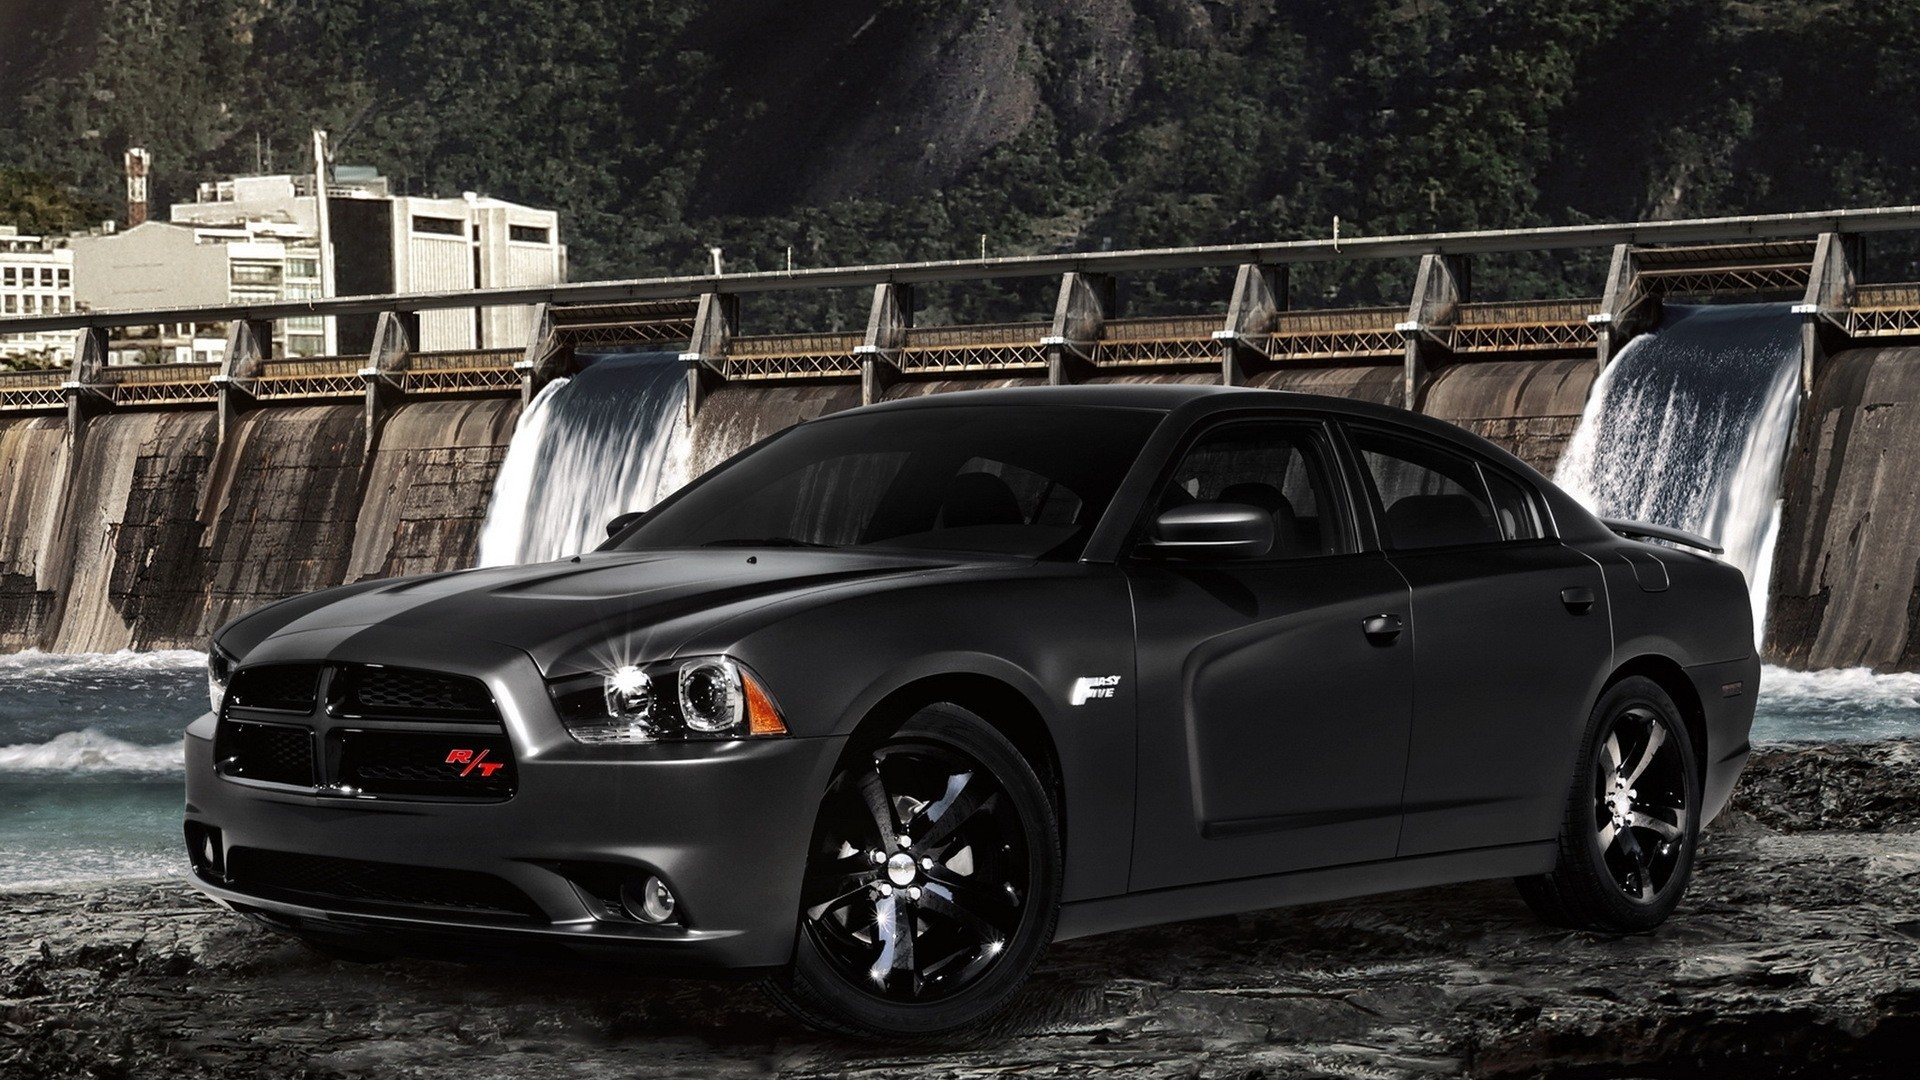 Dodge Charger Fast Five Automobiles Cars Races Wallpaper